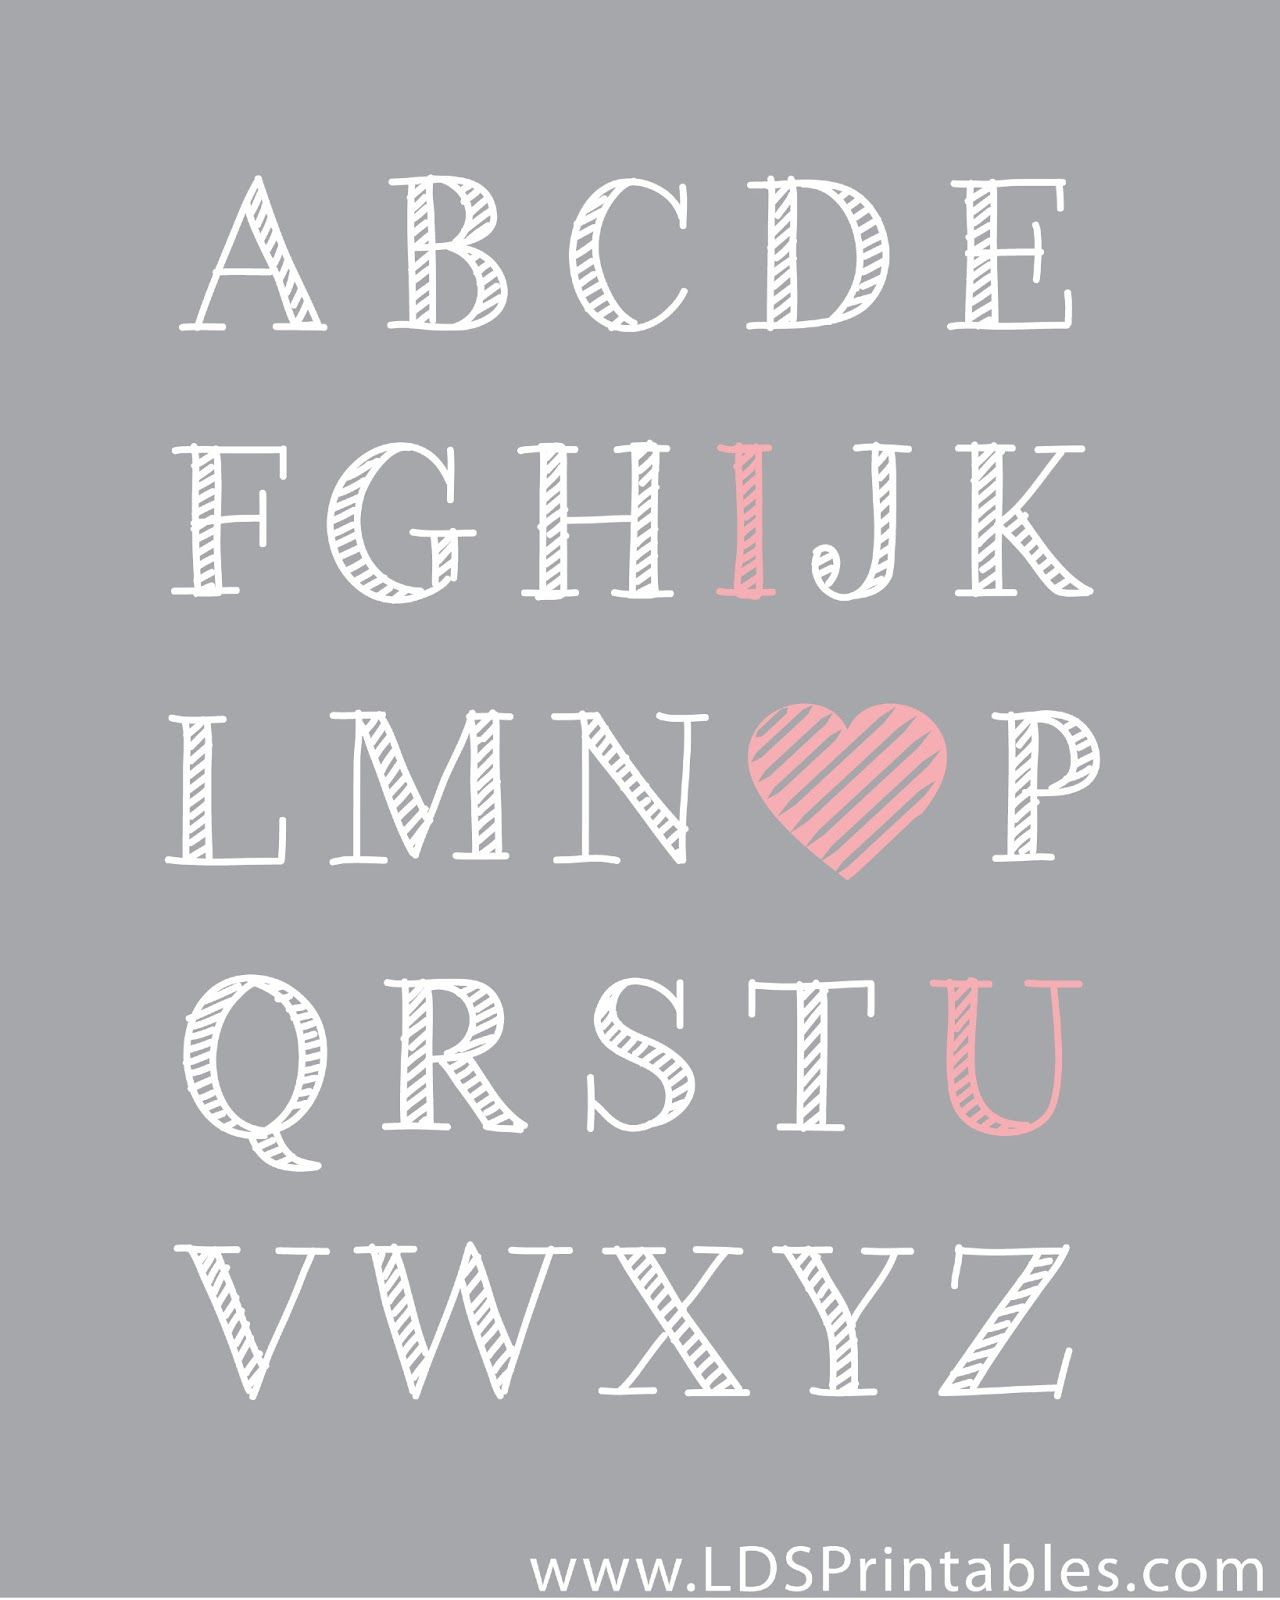 Lds Printables Abc S And 123 S